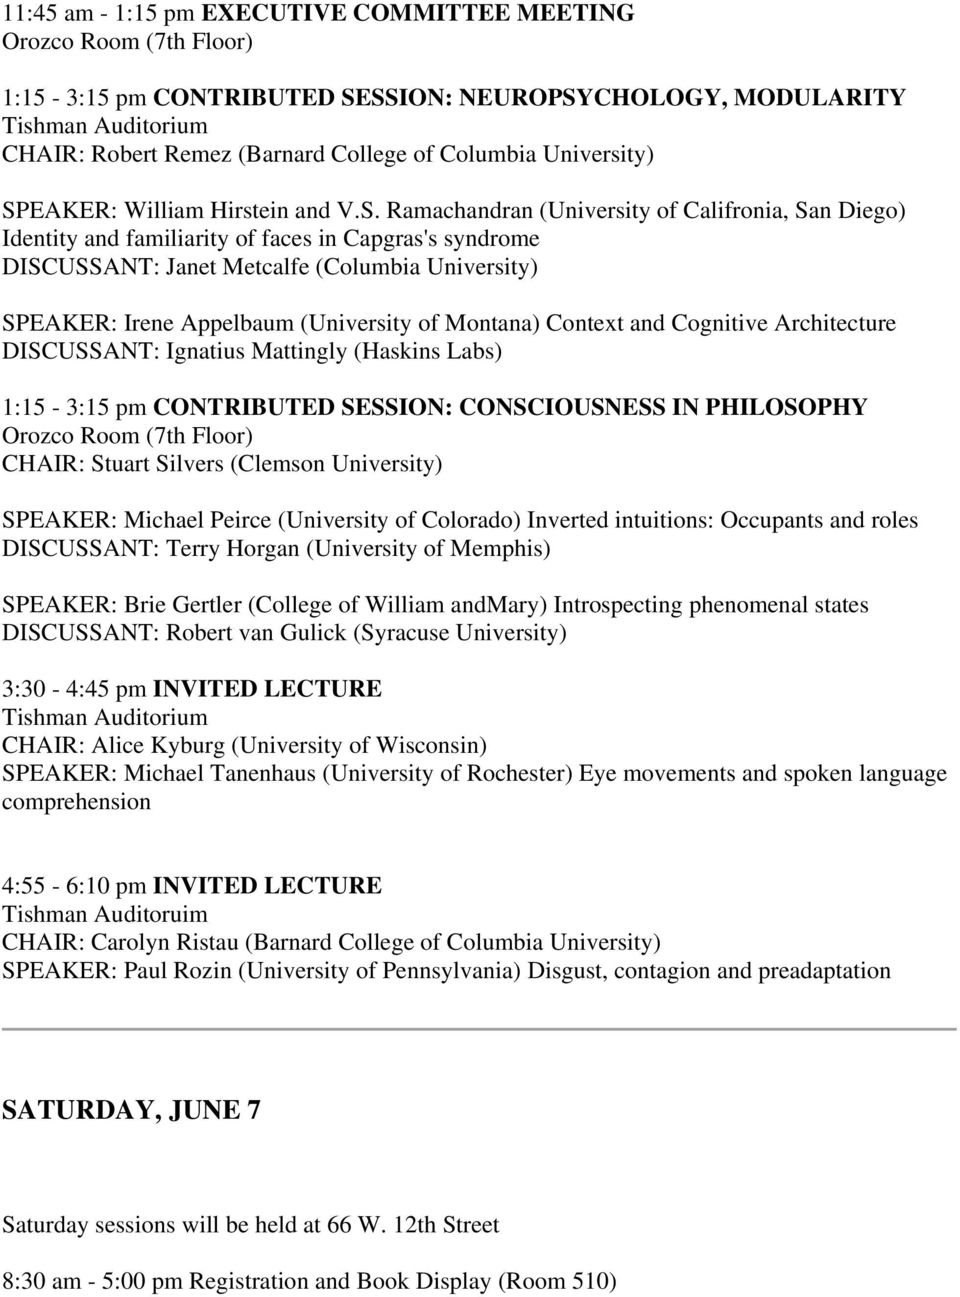 Irene Appelbaum (University of Montana) Context and Cognitive Architecture DISCUSSANT: Ignatius Mattingly (Haskins Labs) 1:15-3:15 pm CONTRIBUTED SESSION: CONSCIOUSNESS IN PHILOSOPHY Orozco Room (7th